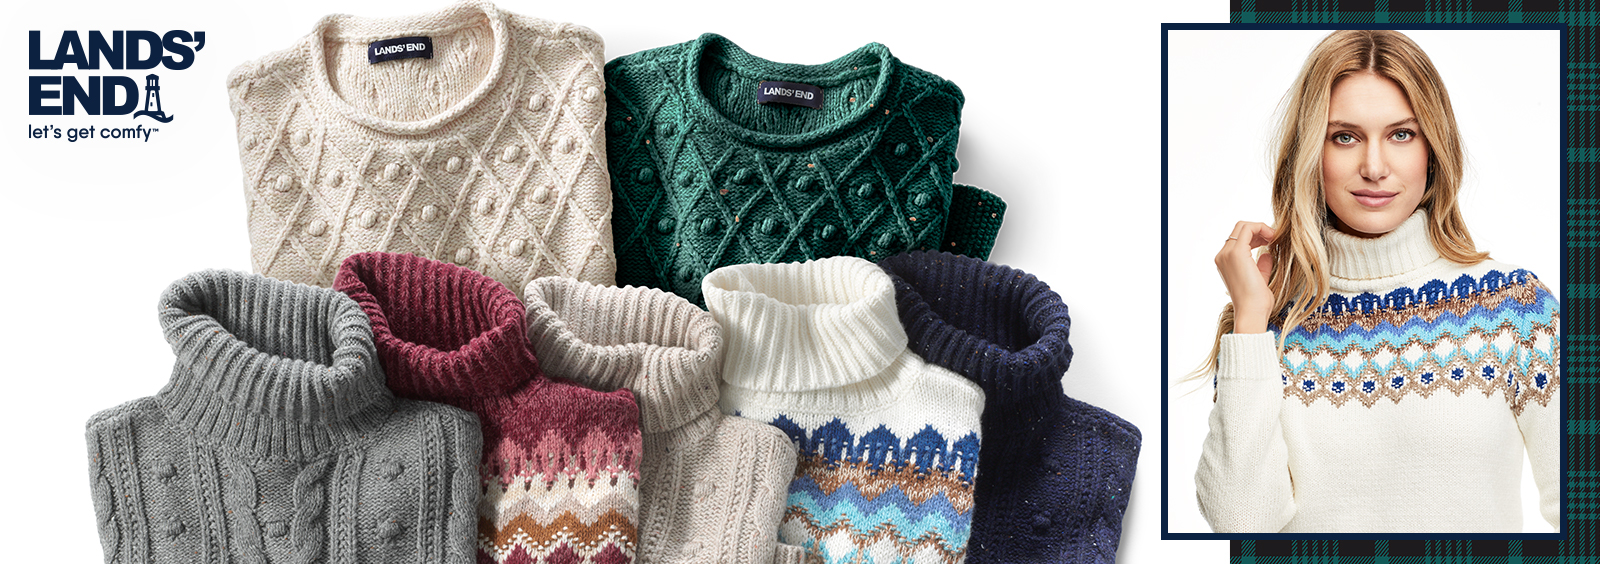 How to Dress Up Your Sweaters in the Winter